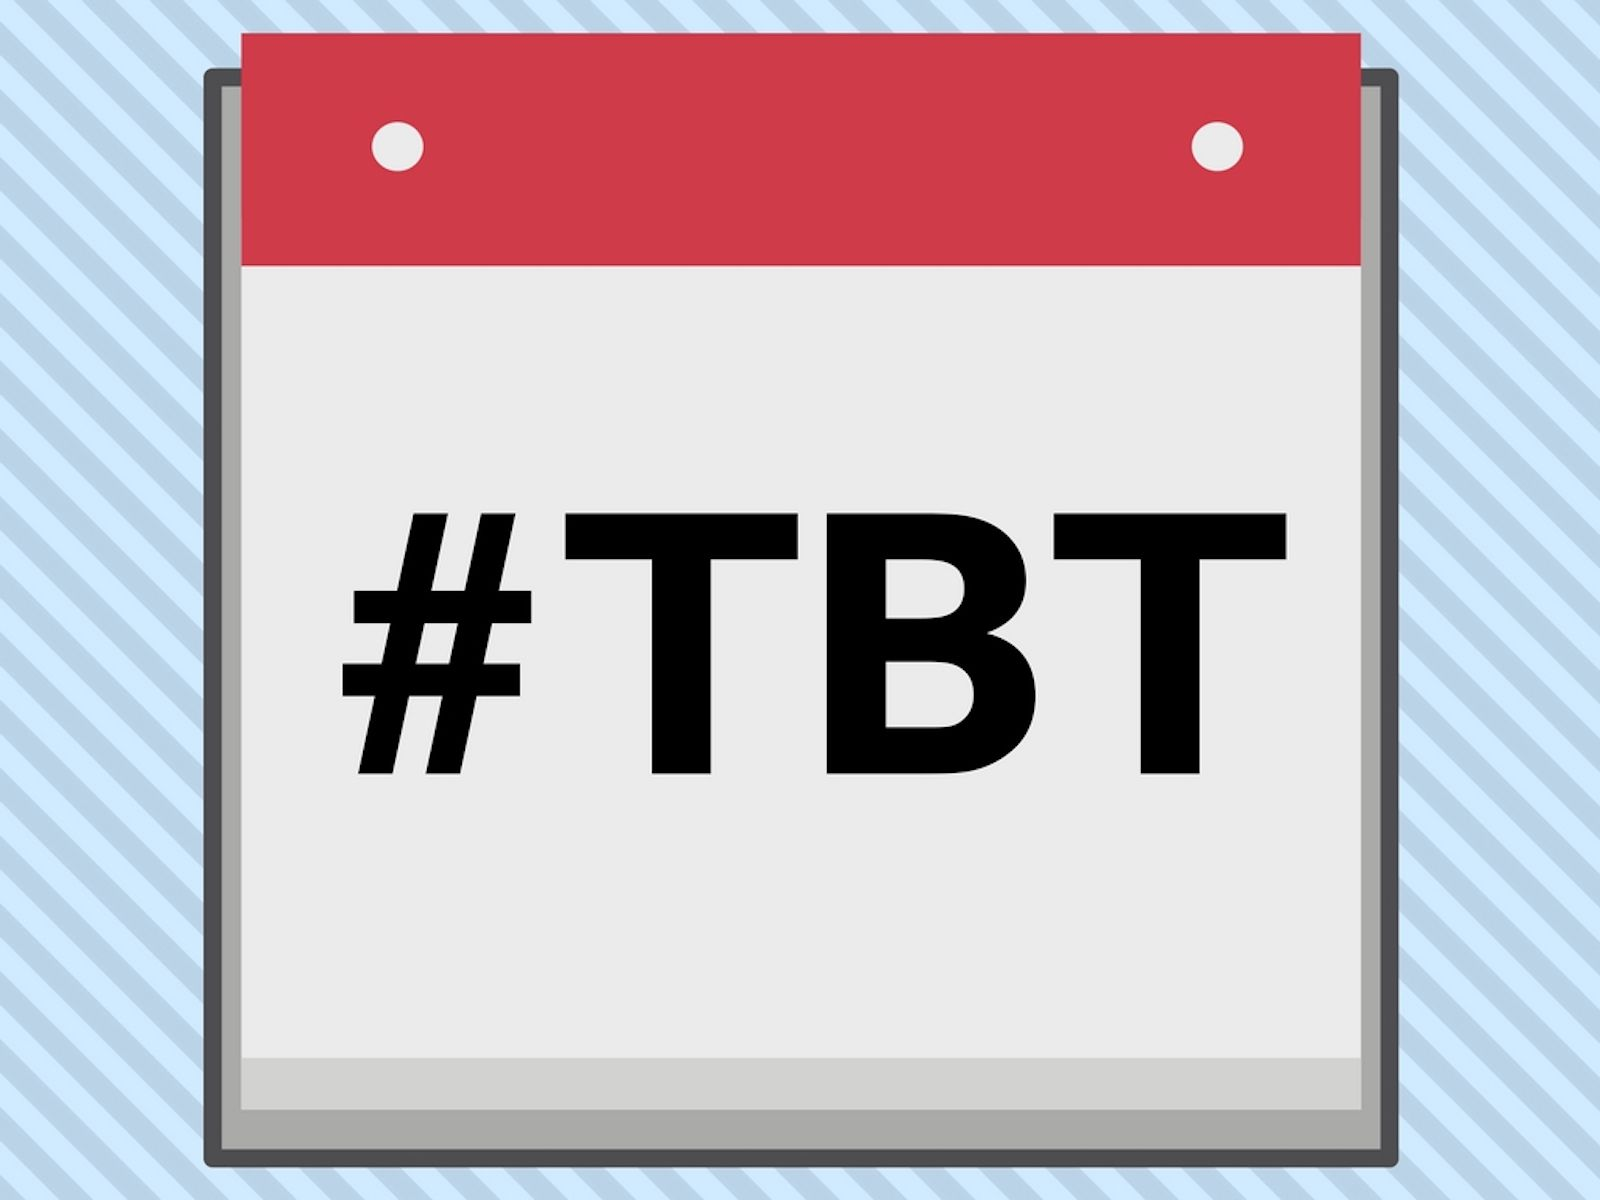 10 Funny Throwback Thursday Ideas to Share